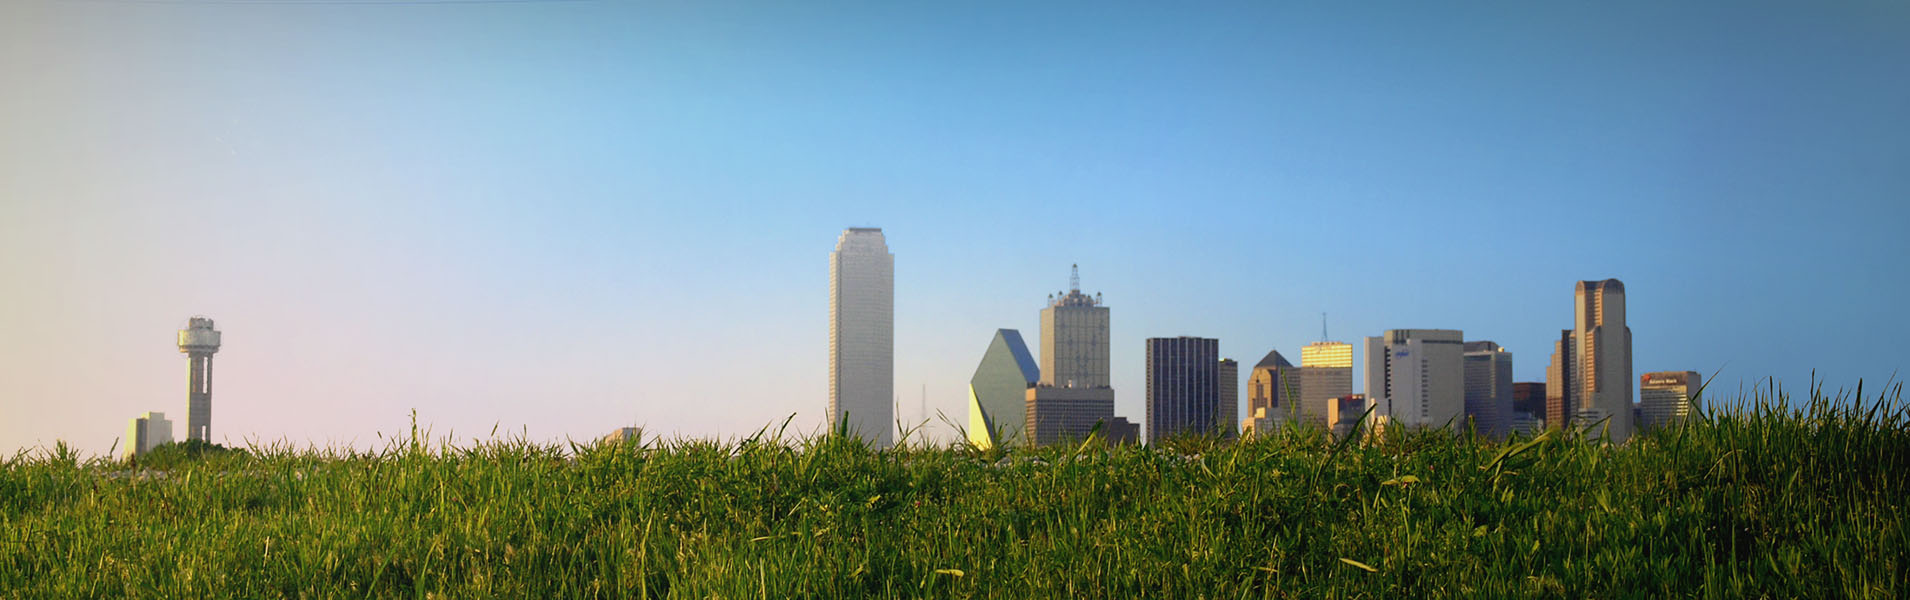 Dallas Texas Skyline10.jpg